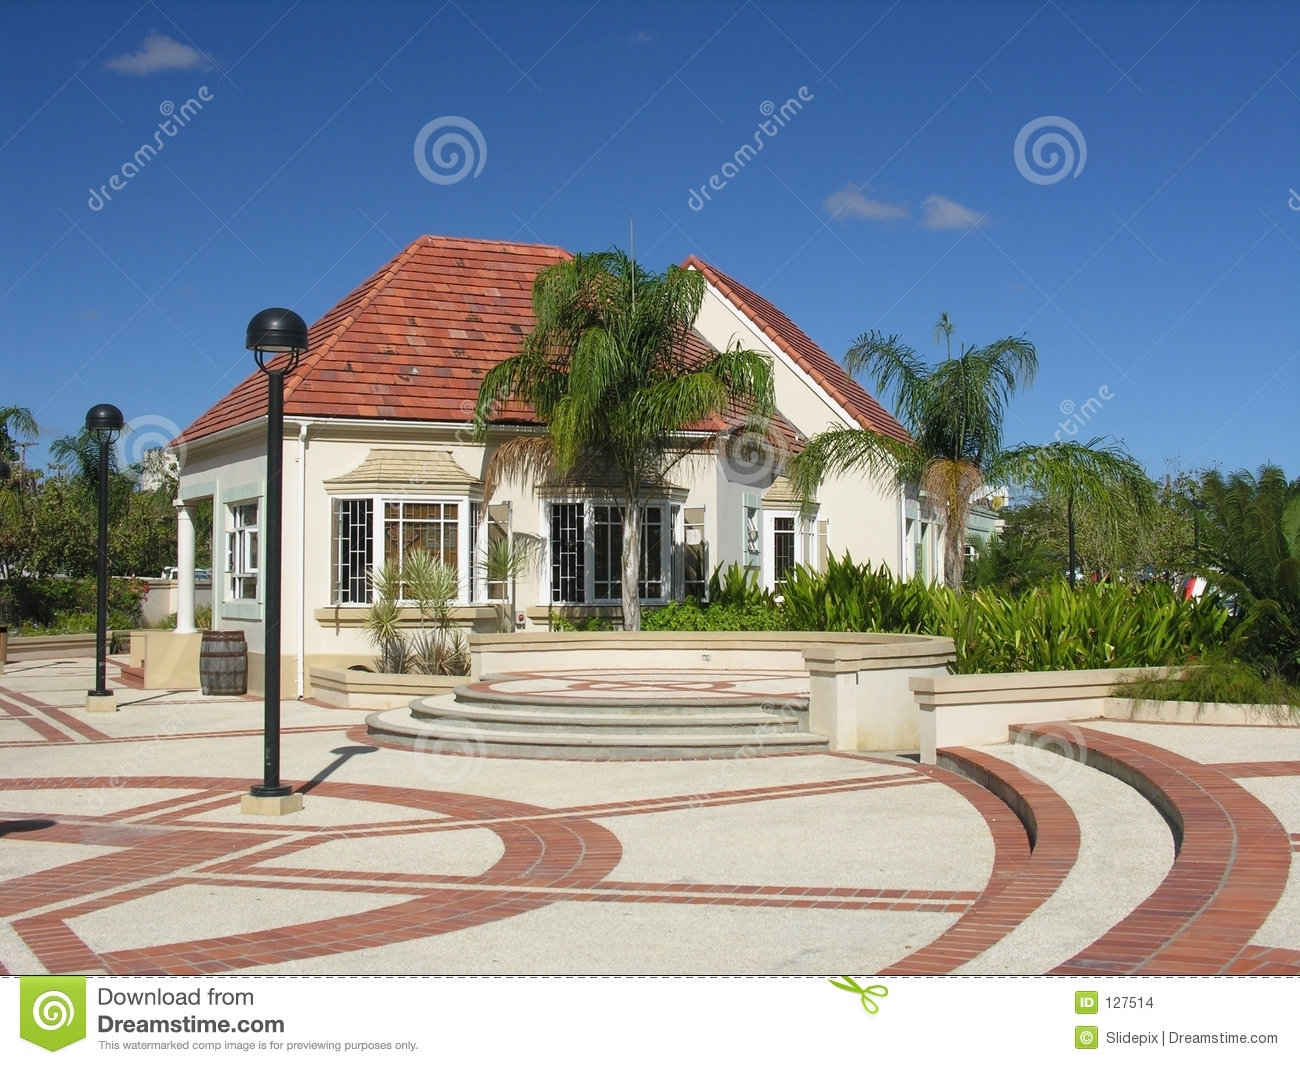 Modern Caribbean Architecture modern caribbean architecture stock images - image: 127514